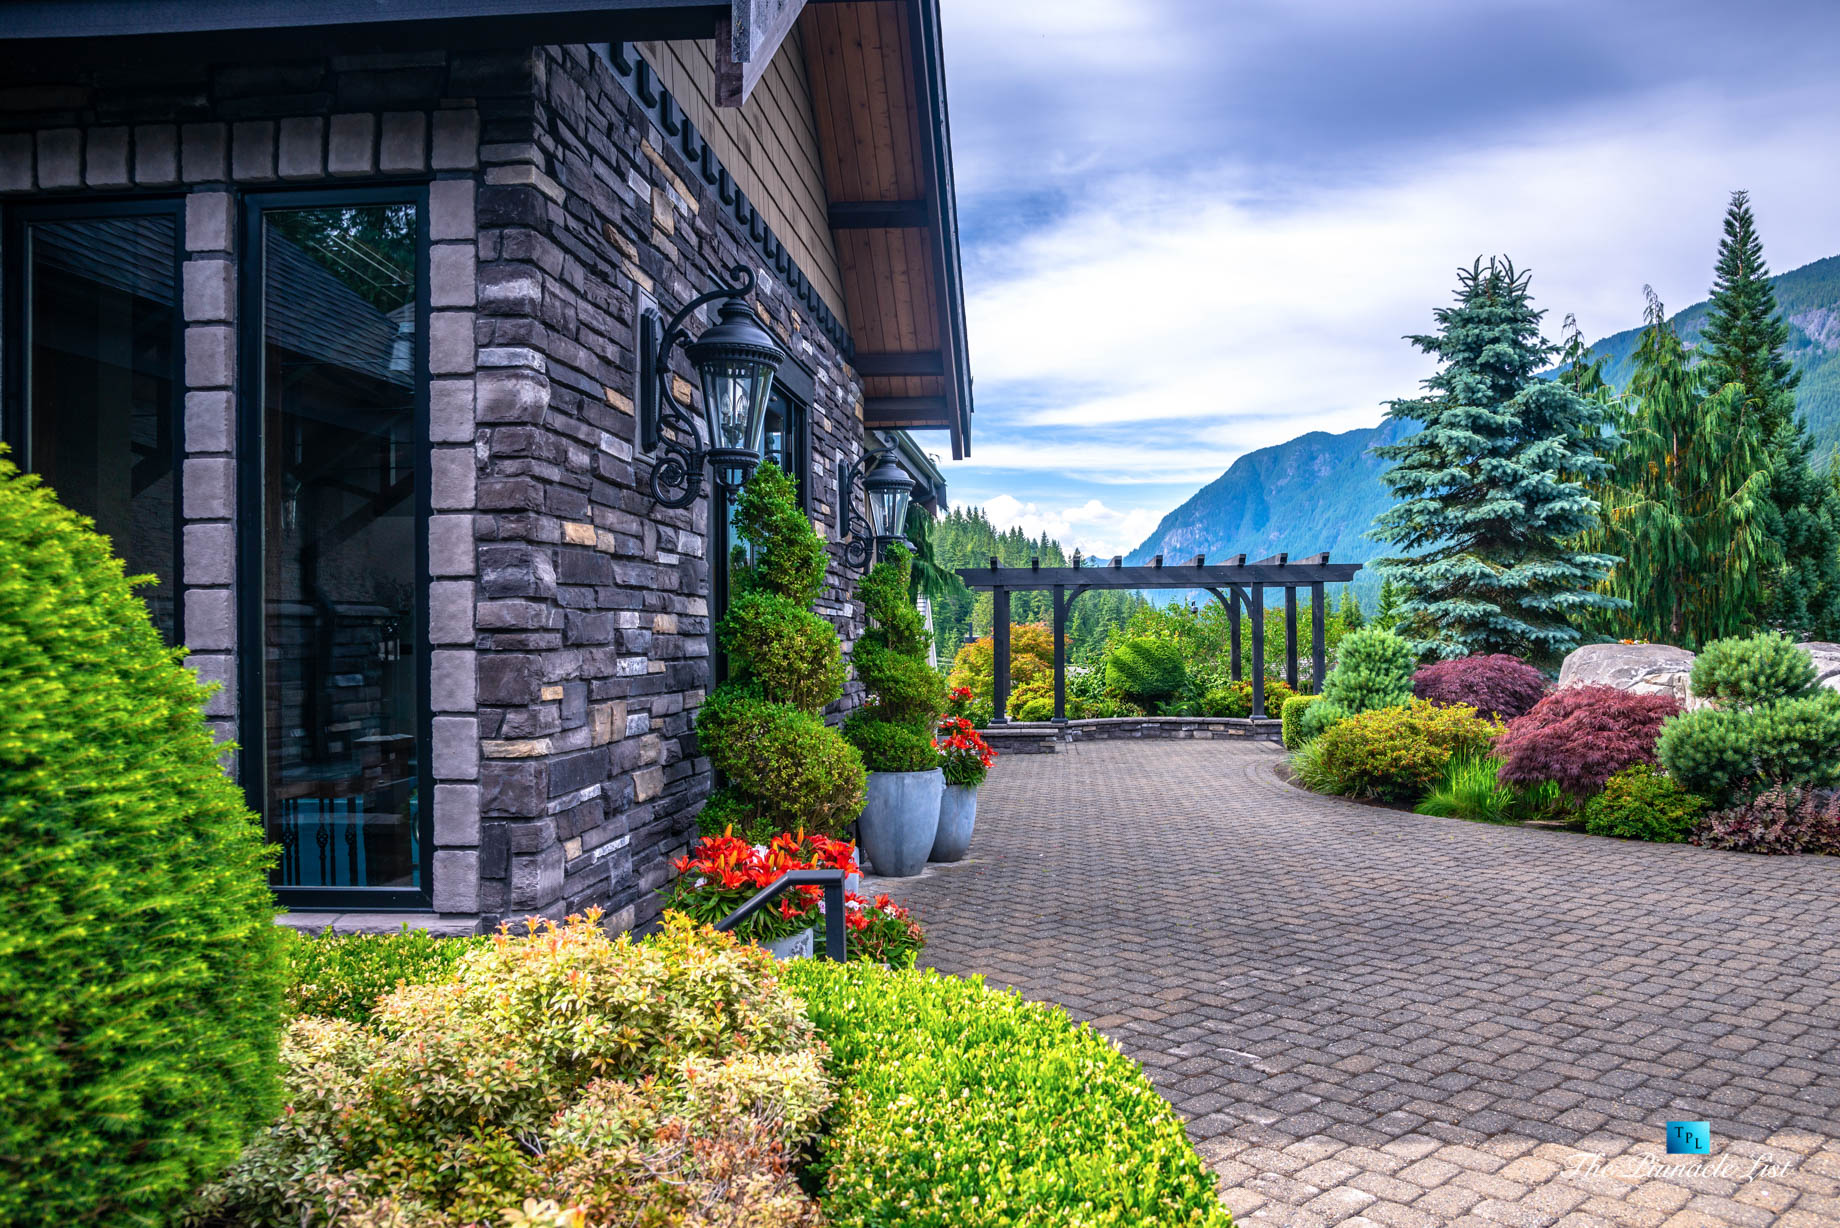 3053 Anmore Creek Way, Anmore, BC, Canada - Backyard Landscaping - Luxury Real Estate - Greater Vancouver Home